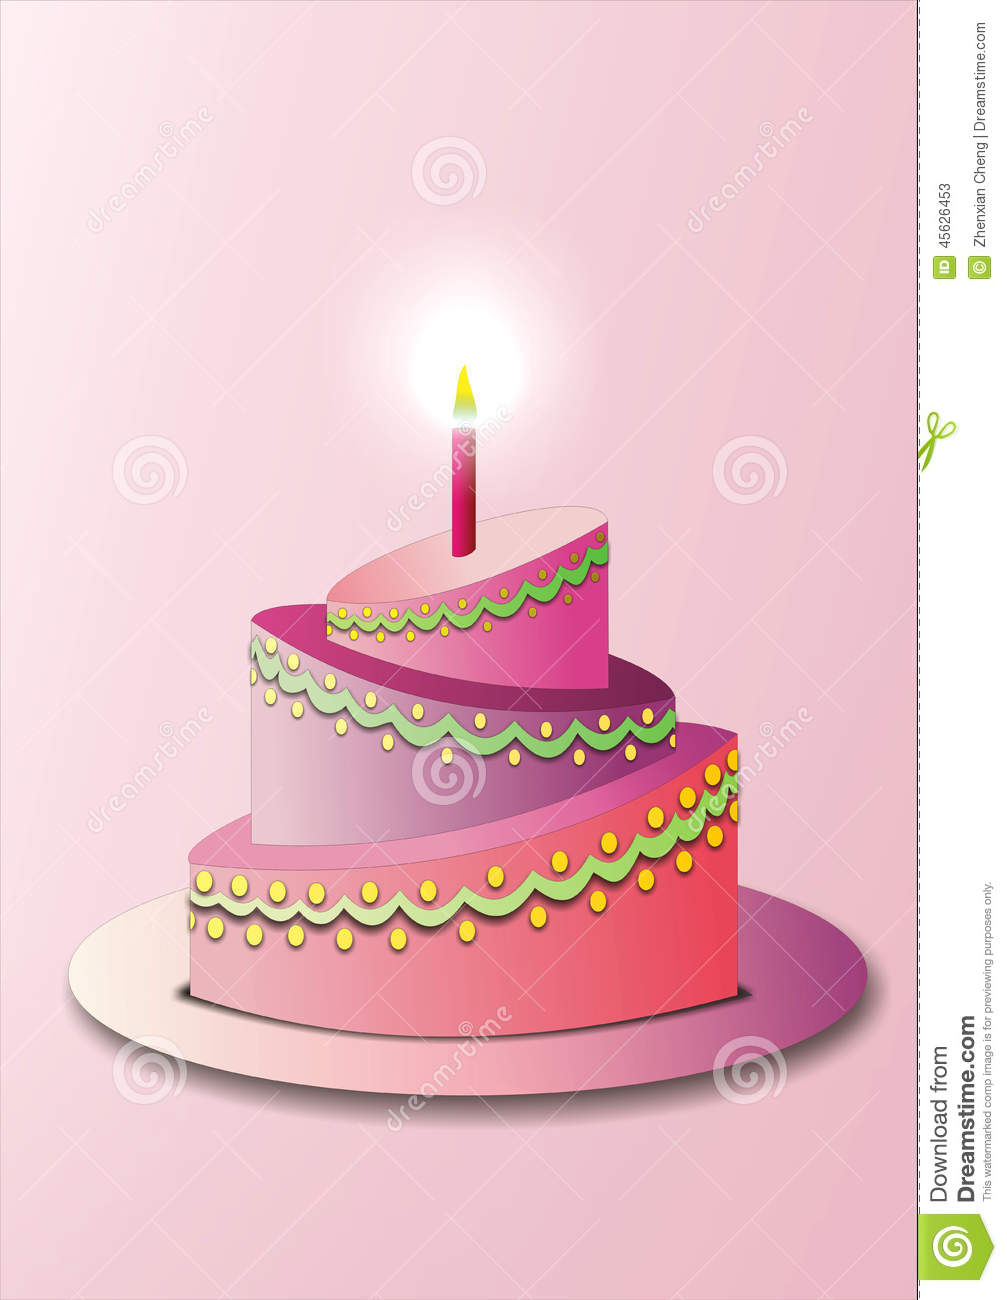 Red Colour Cake Images : Pink Birthday Cake Stock Illustration - Image: 45626453